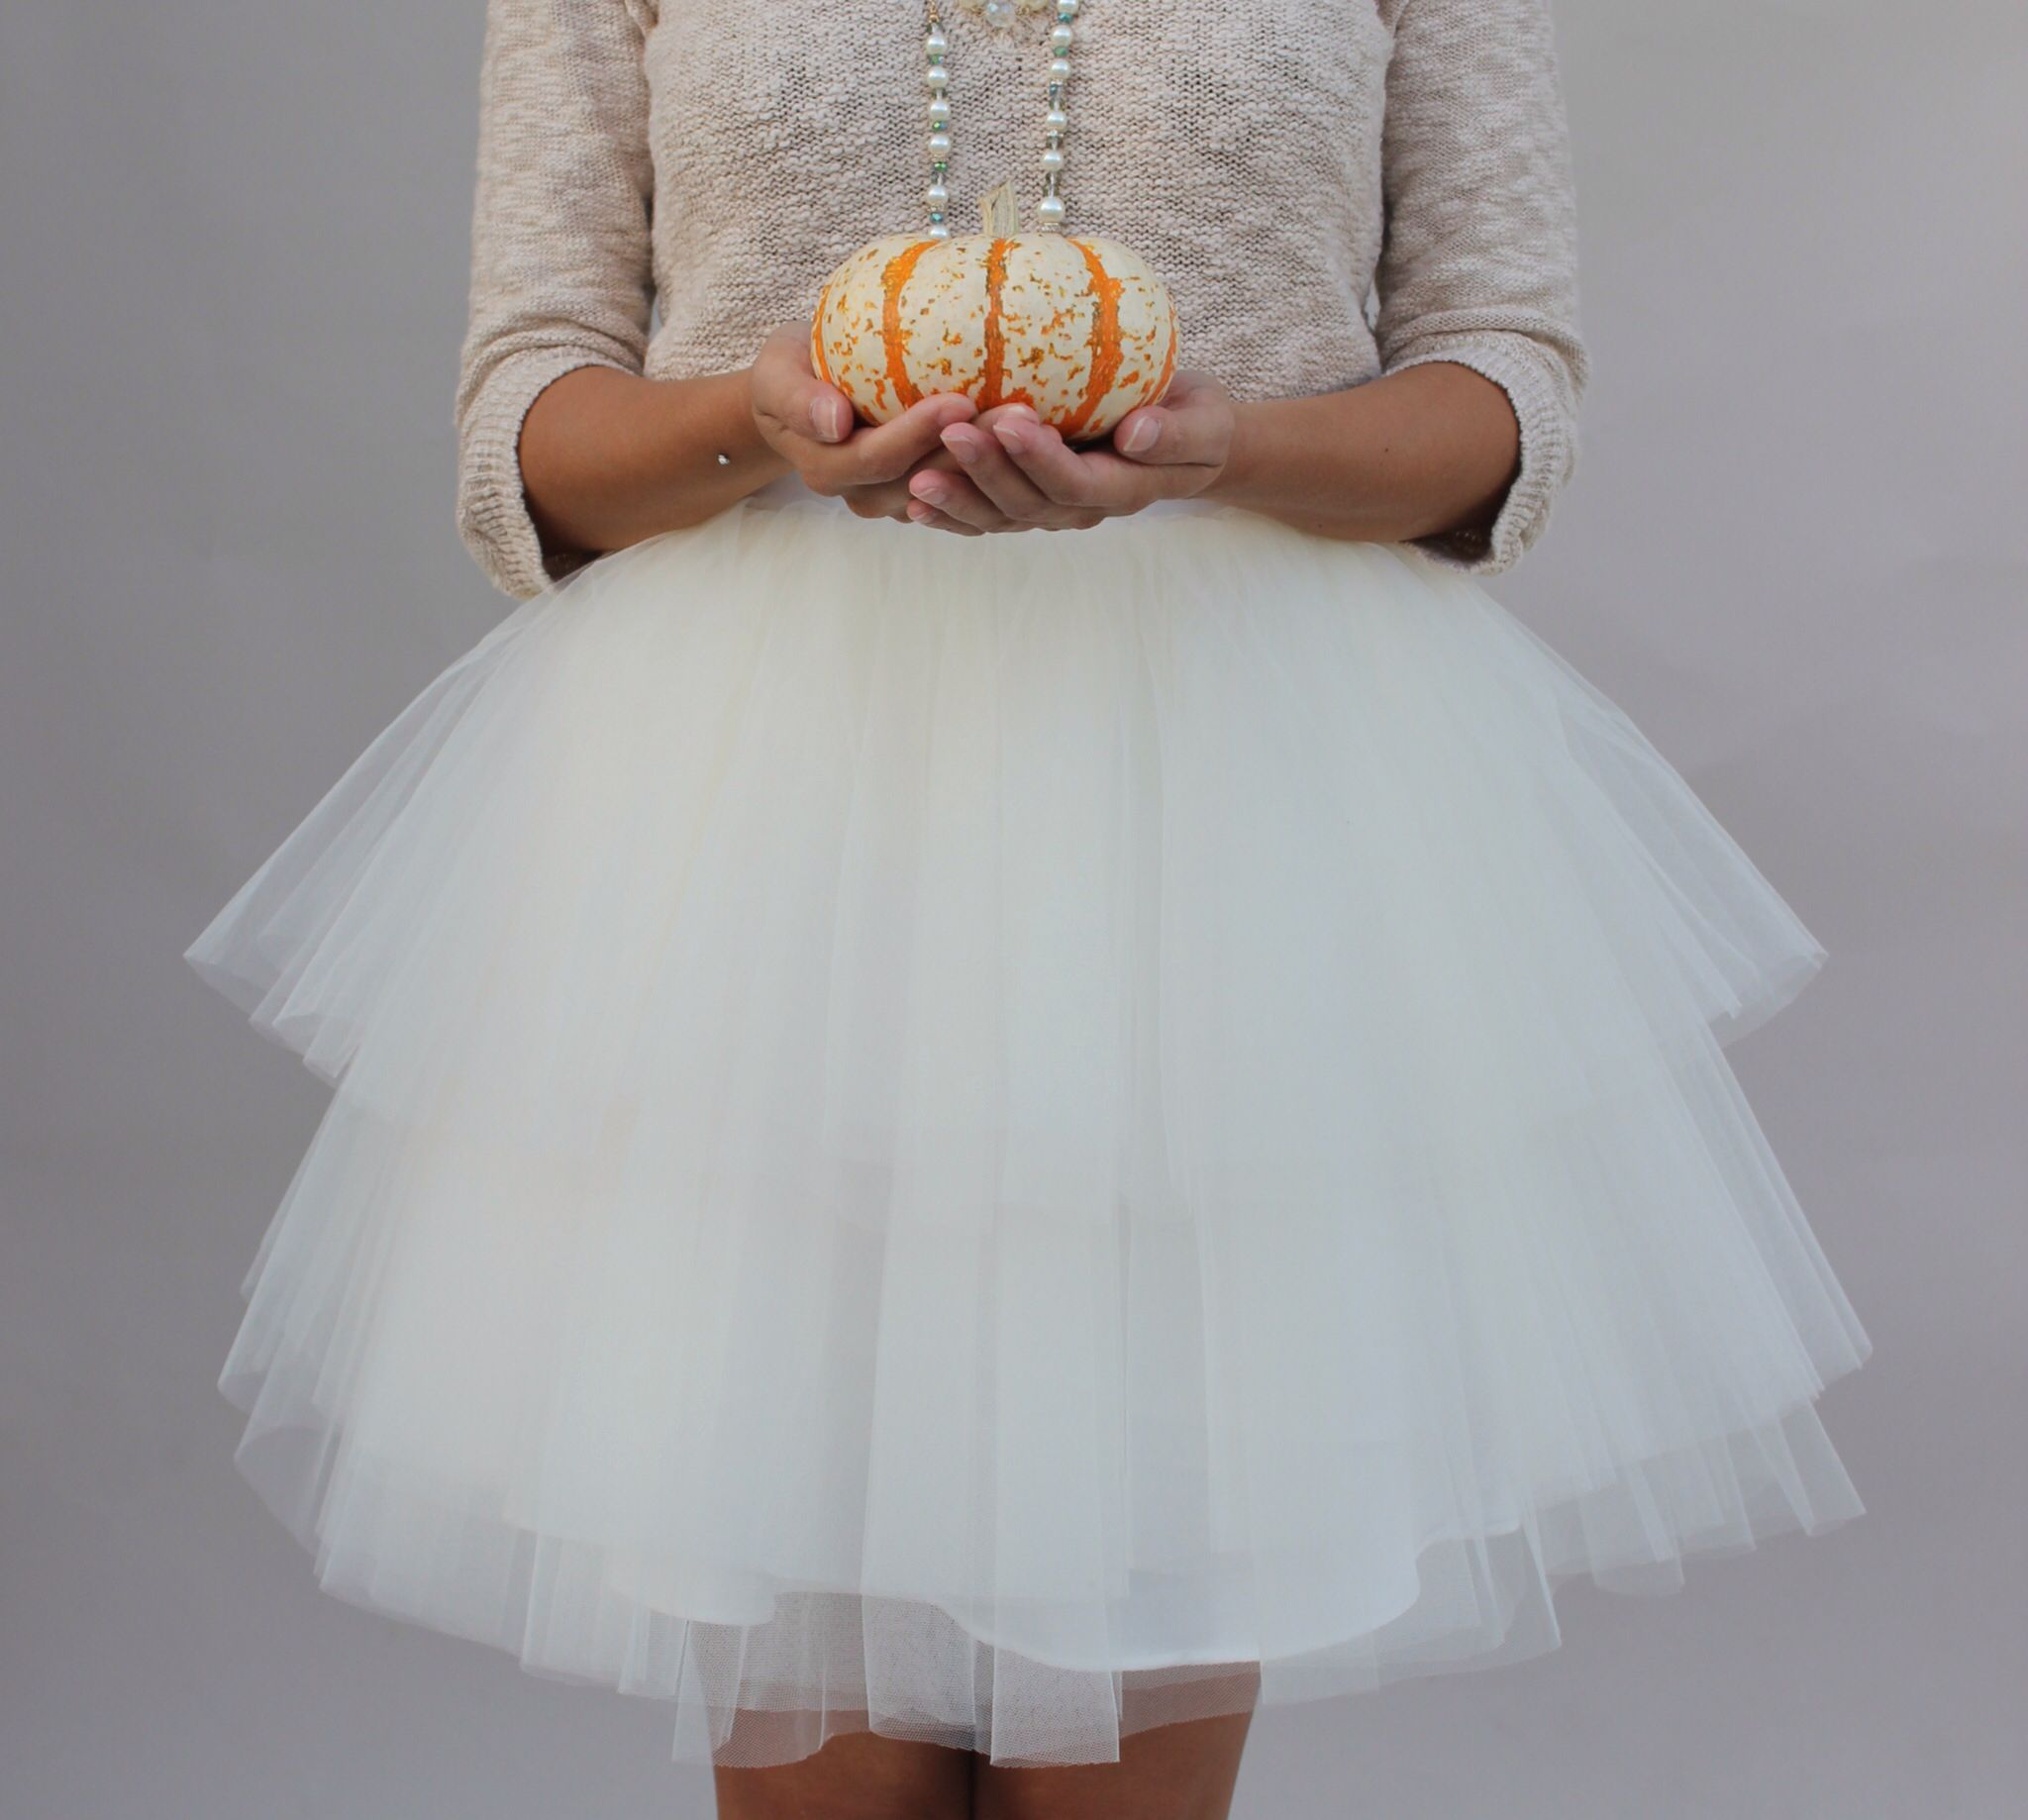 Carrie Bradshaw tulle skirt from www.space46boutique.com